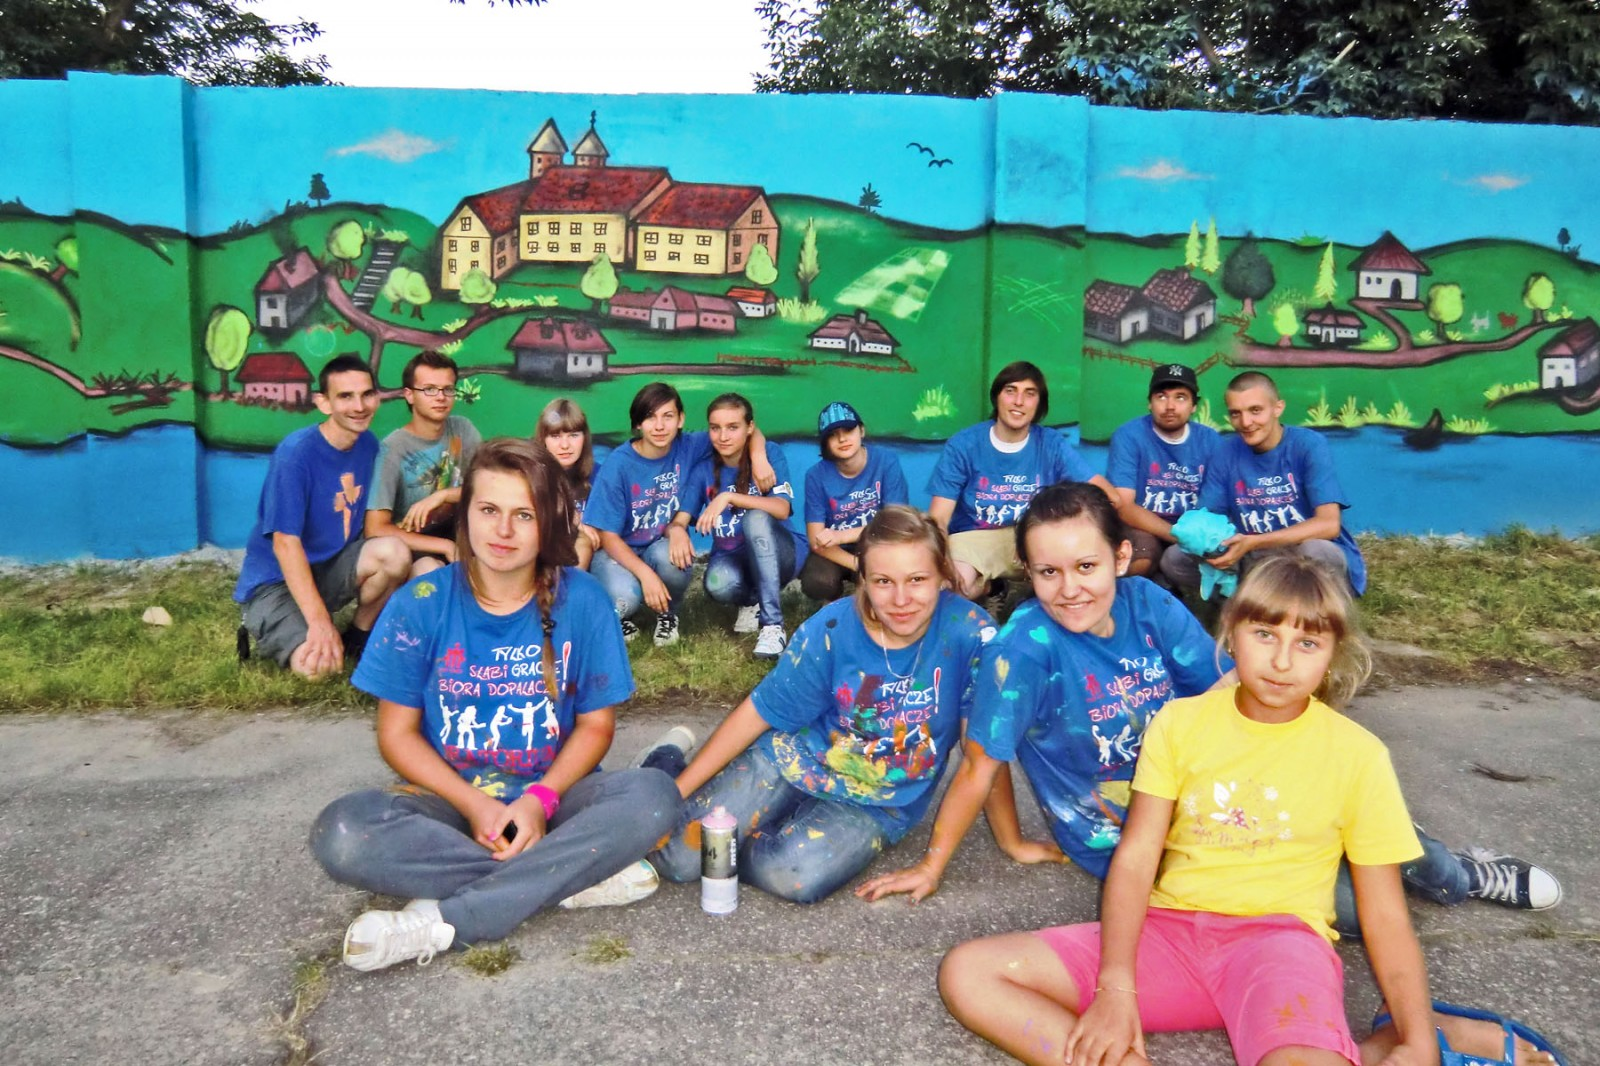 Mural at sport facilities in Czerwinsk upon Vistula river | Czerwinsk on the Vistula | CSR | About us